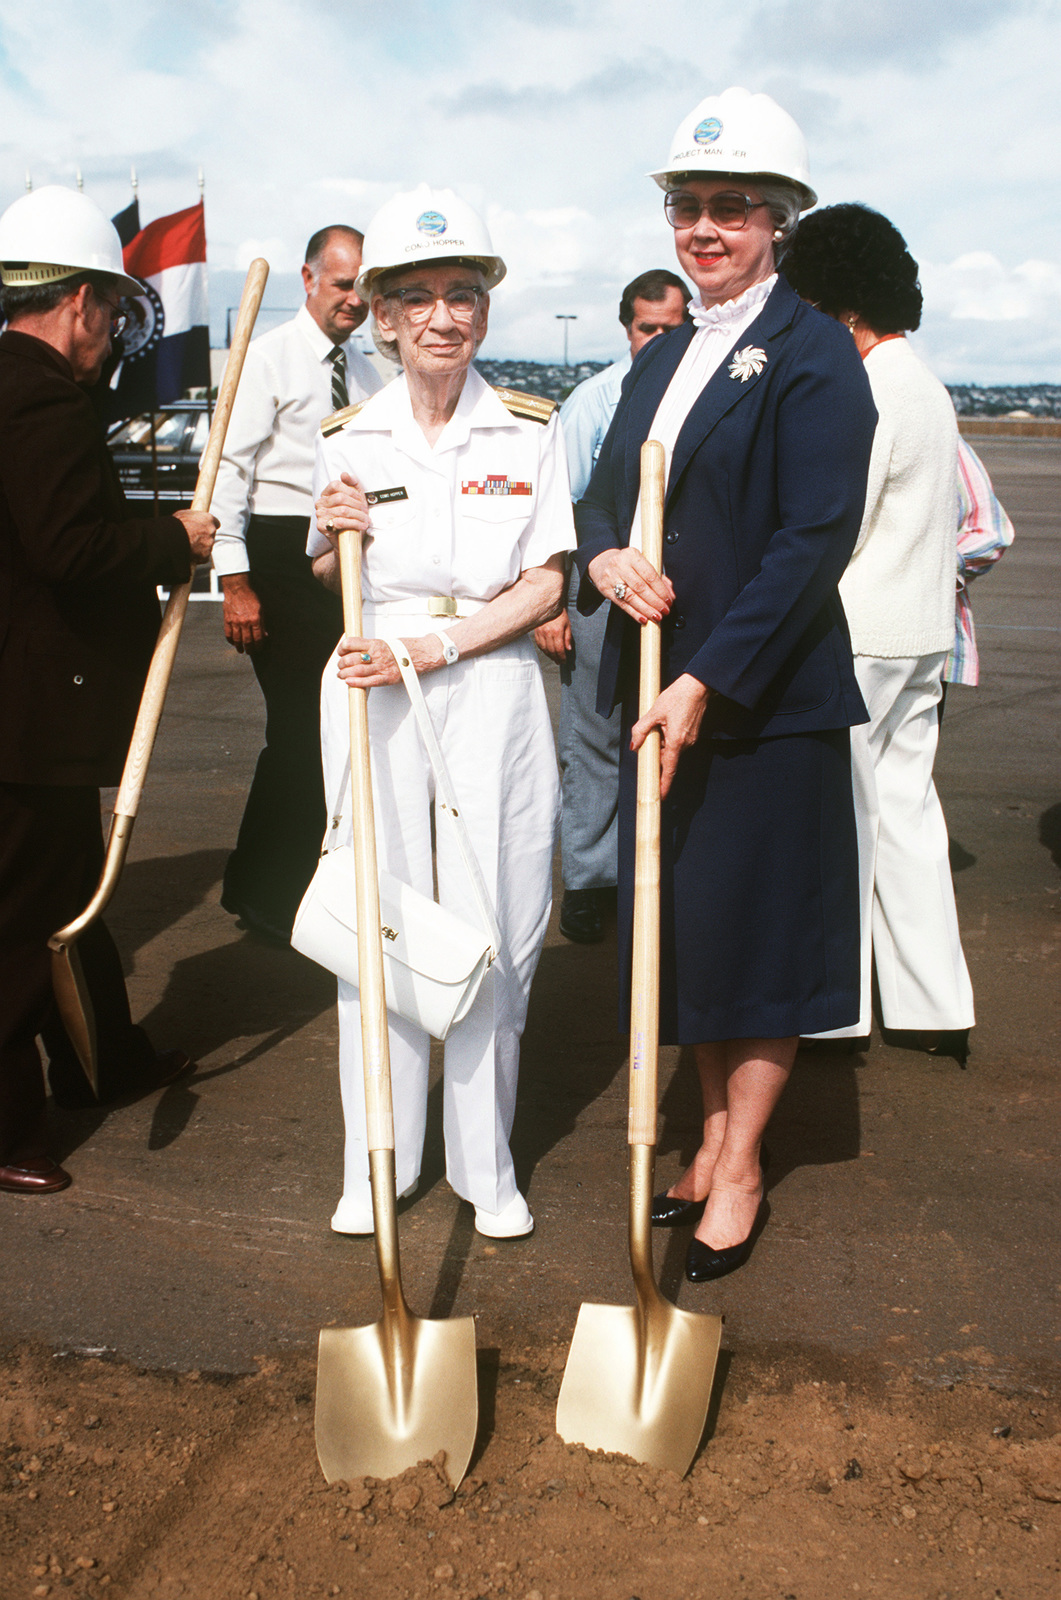 Commodore Grace M. Hopper, special assistant to the commander, Naval Data Automation Command, and Eva M. Sebastian, project manager, Navy Regional Data Automation Center, pose with ceremonial shovels at Rear Admiral John W. Nyquist, director, Surface Combat the groundbreaking ceremony for the Grace M. Hopper Navy Regional Data Automation Center, San Diego